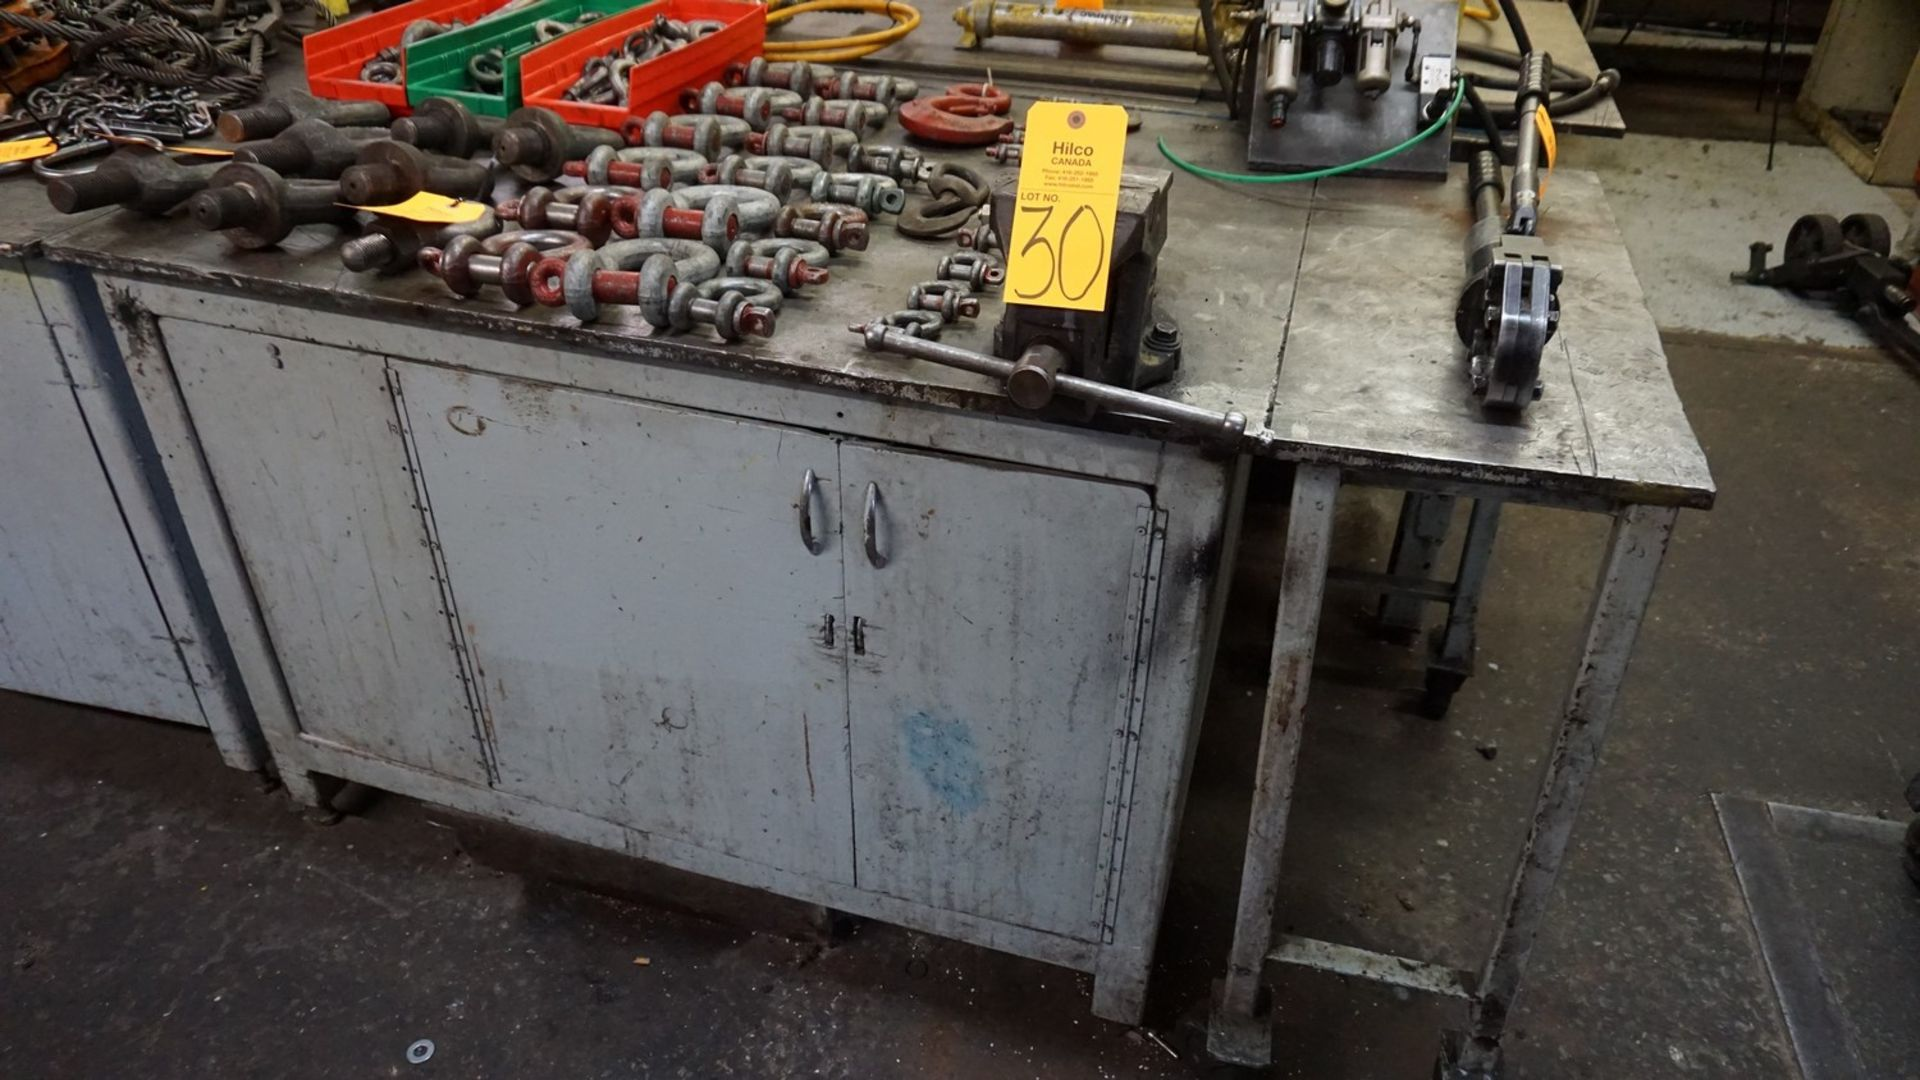 "Lot 30 - 67"" x 38"" Metal Work Bench with Vise (No Contents)"